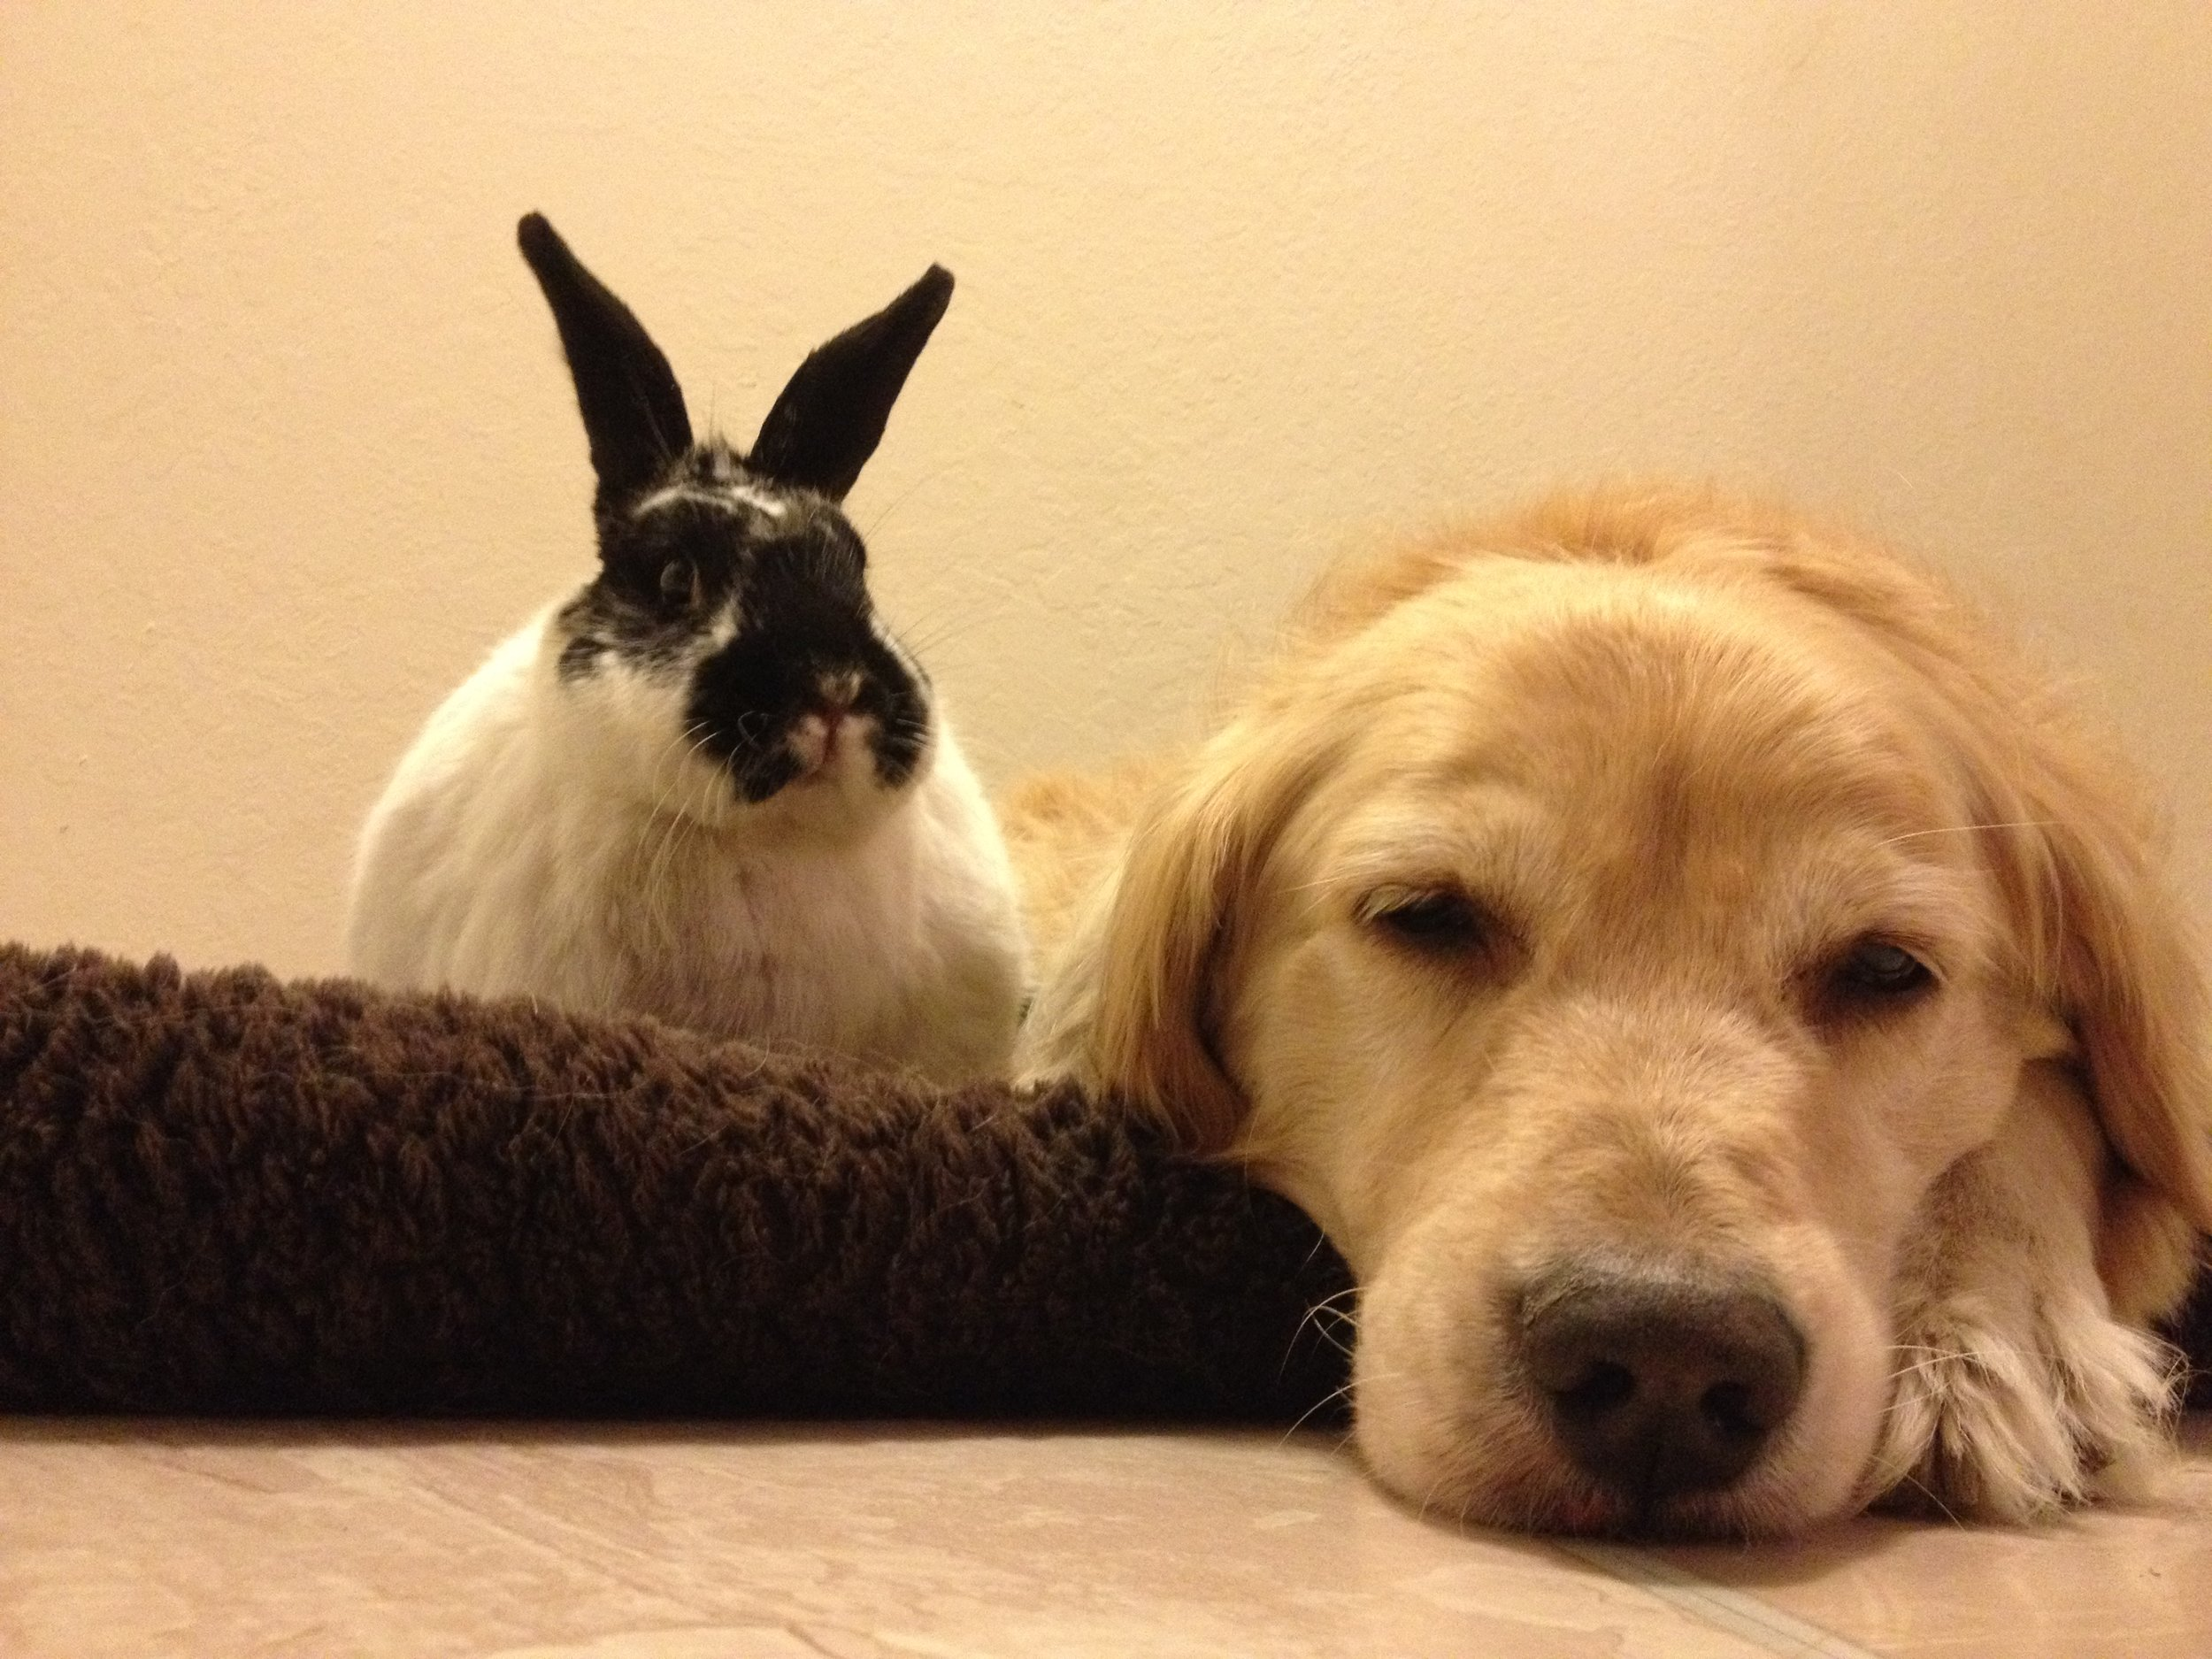 Security Bunny Stays Alert While Pup Sleeps